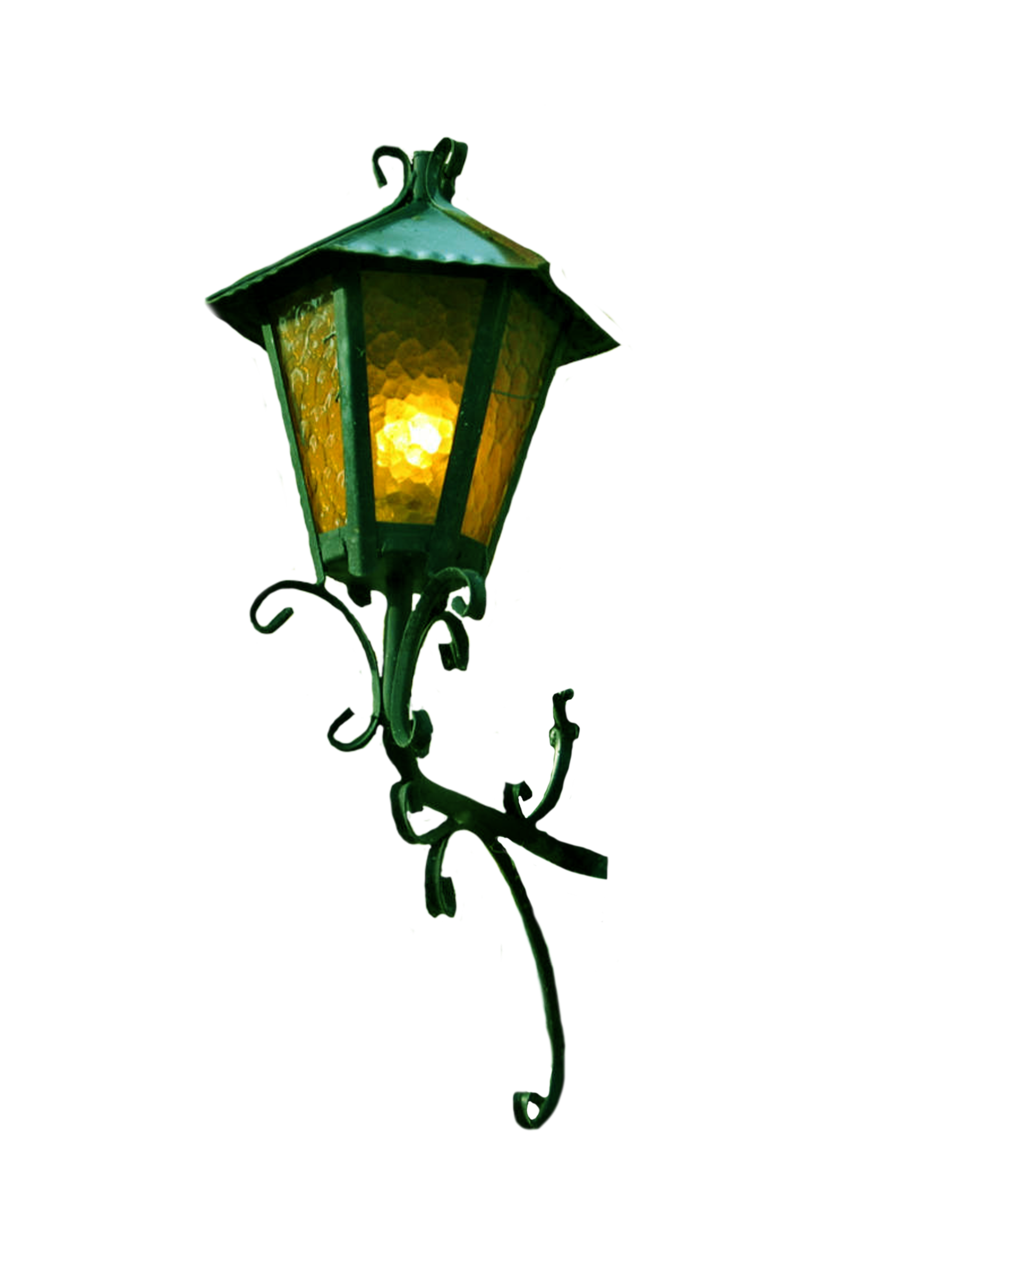 Free Clipart Lamp Pictures image #34935